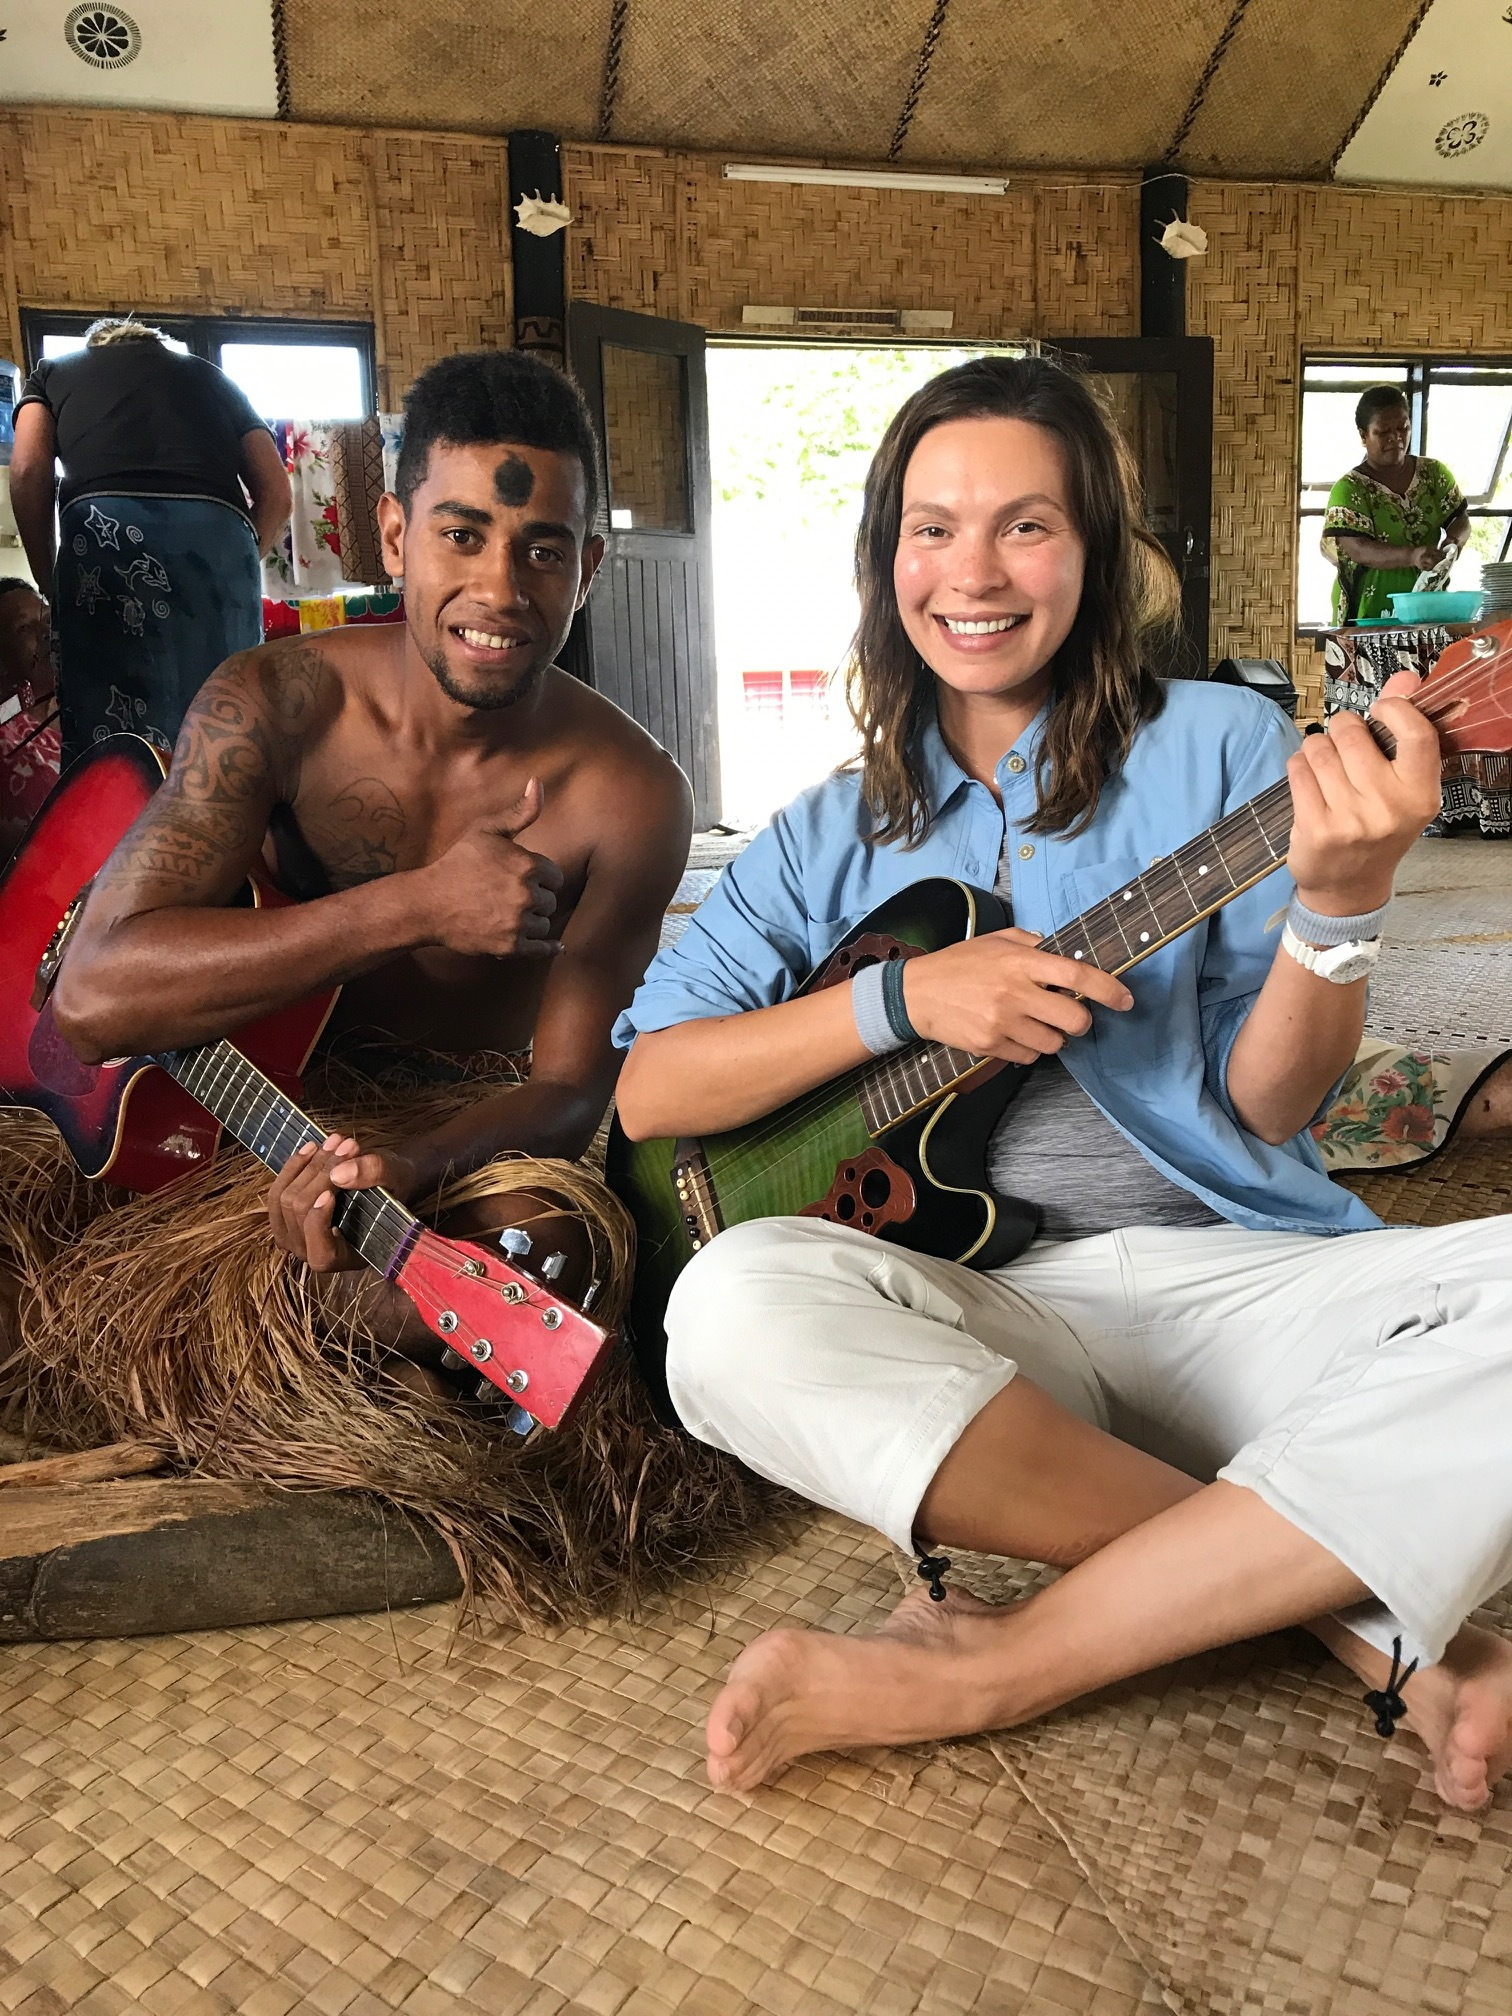 Jamming with the locals.